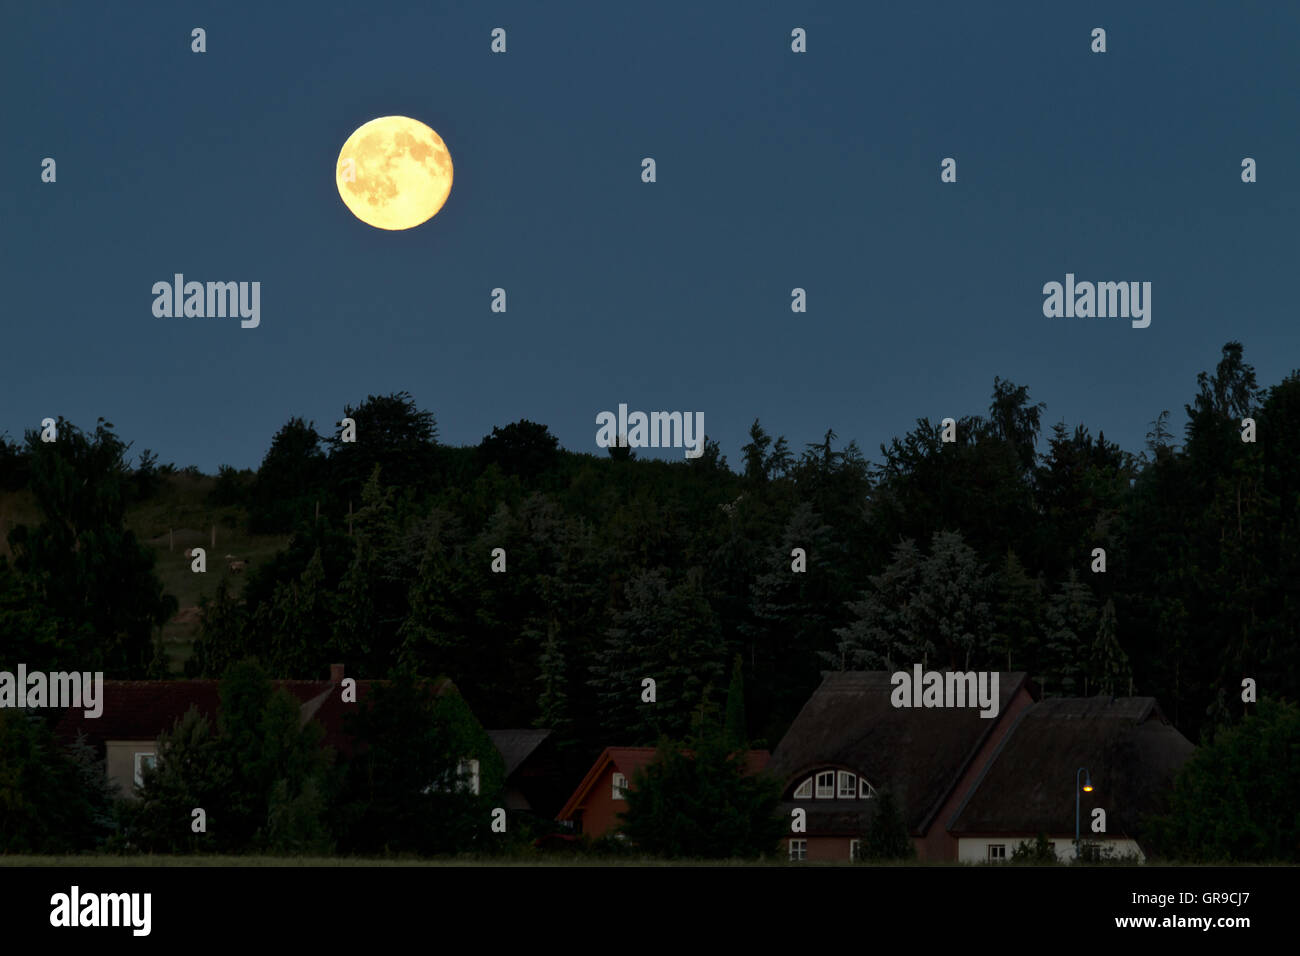 Full Moon Is Up - Stock Image